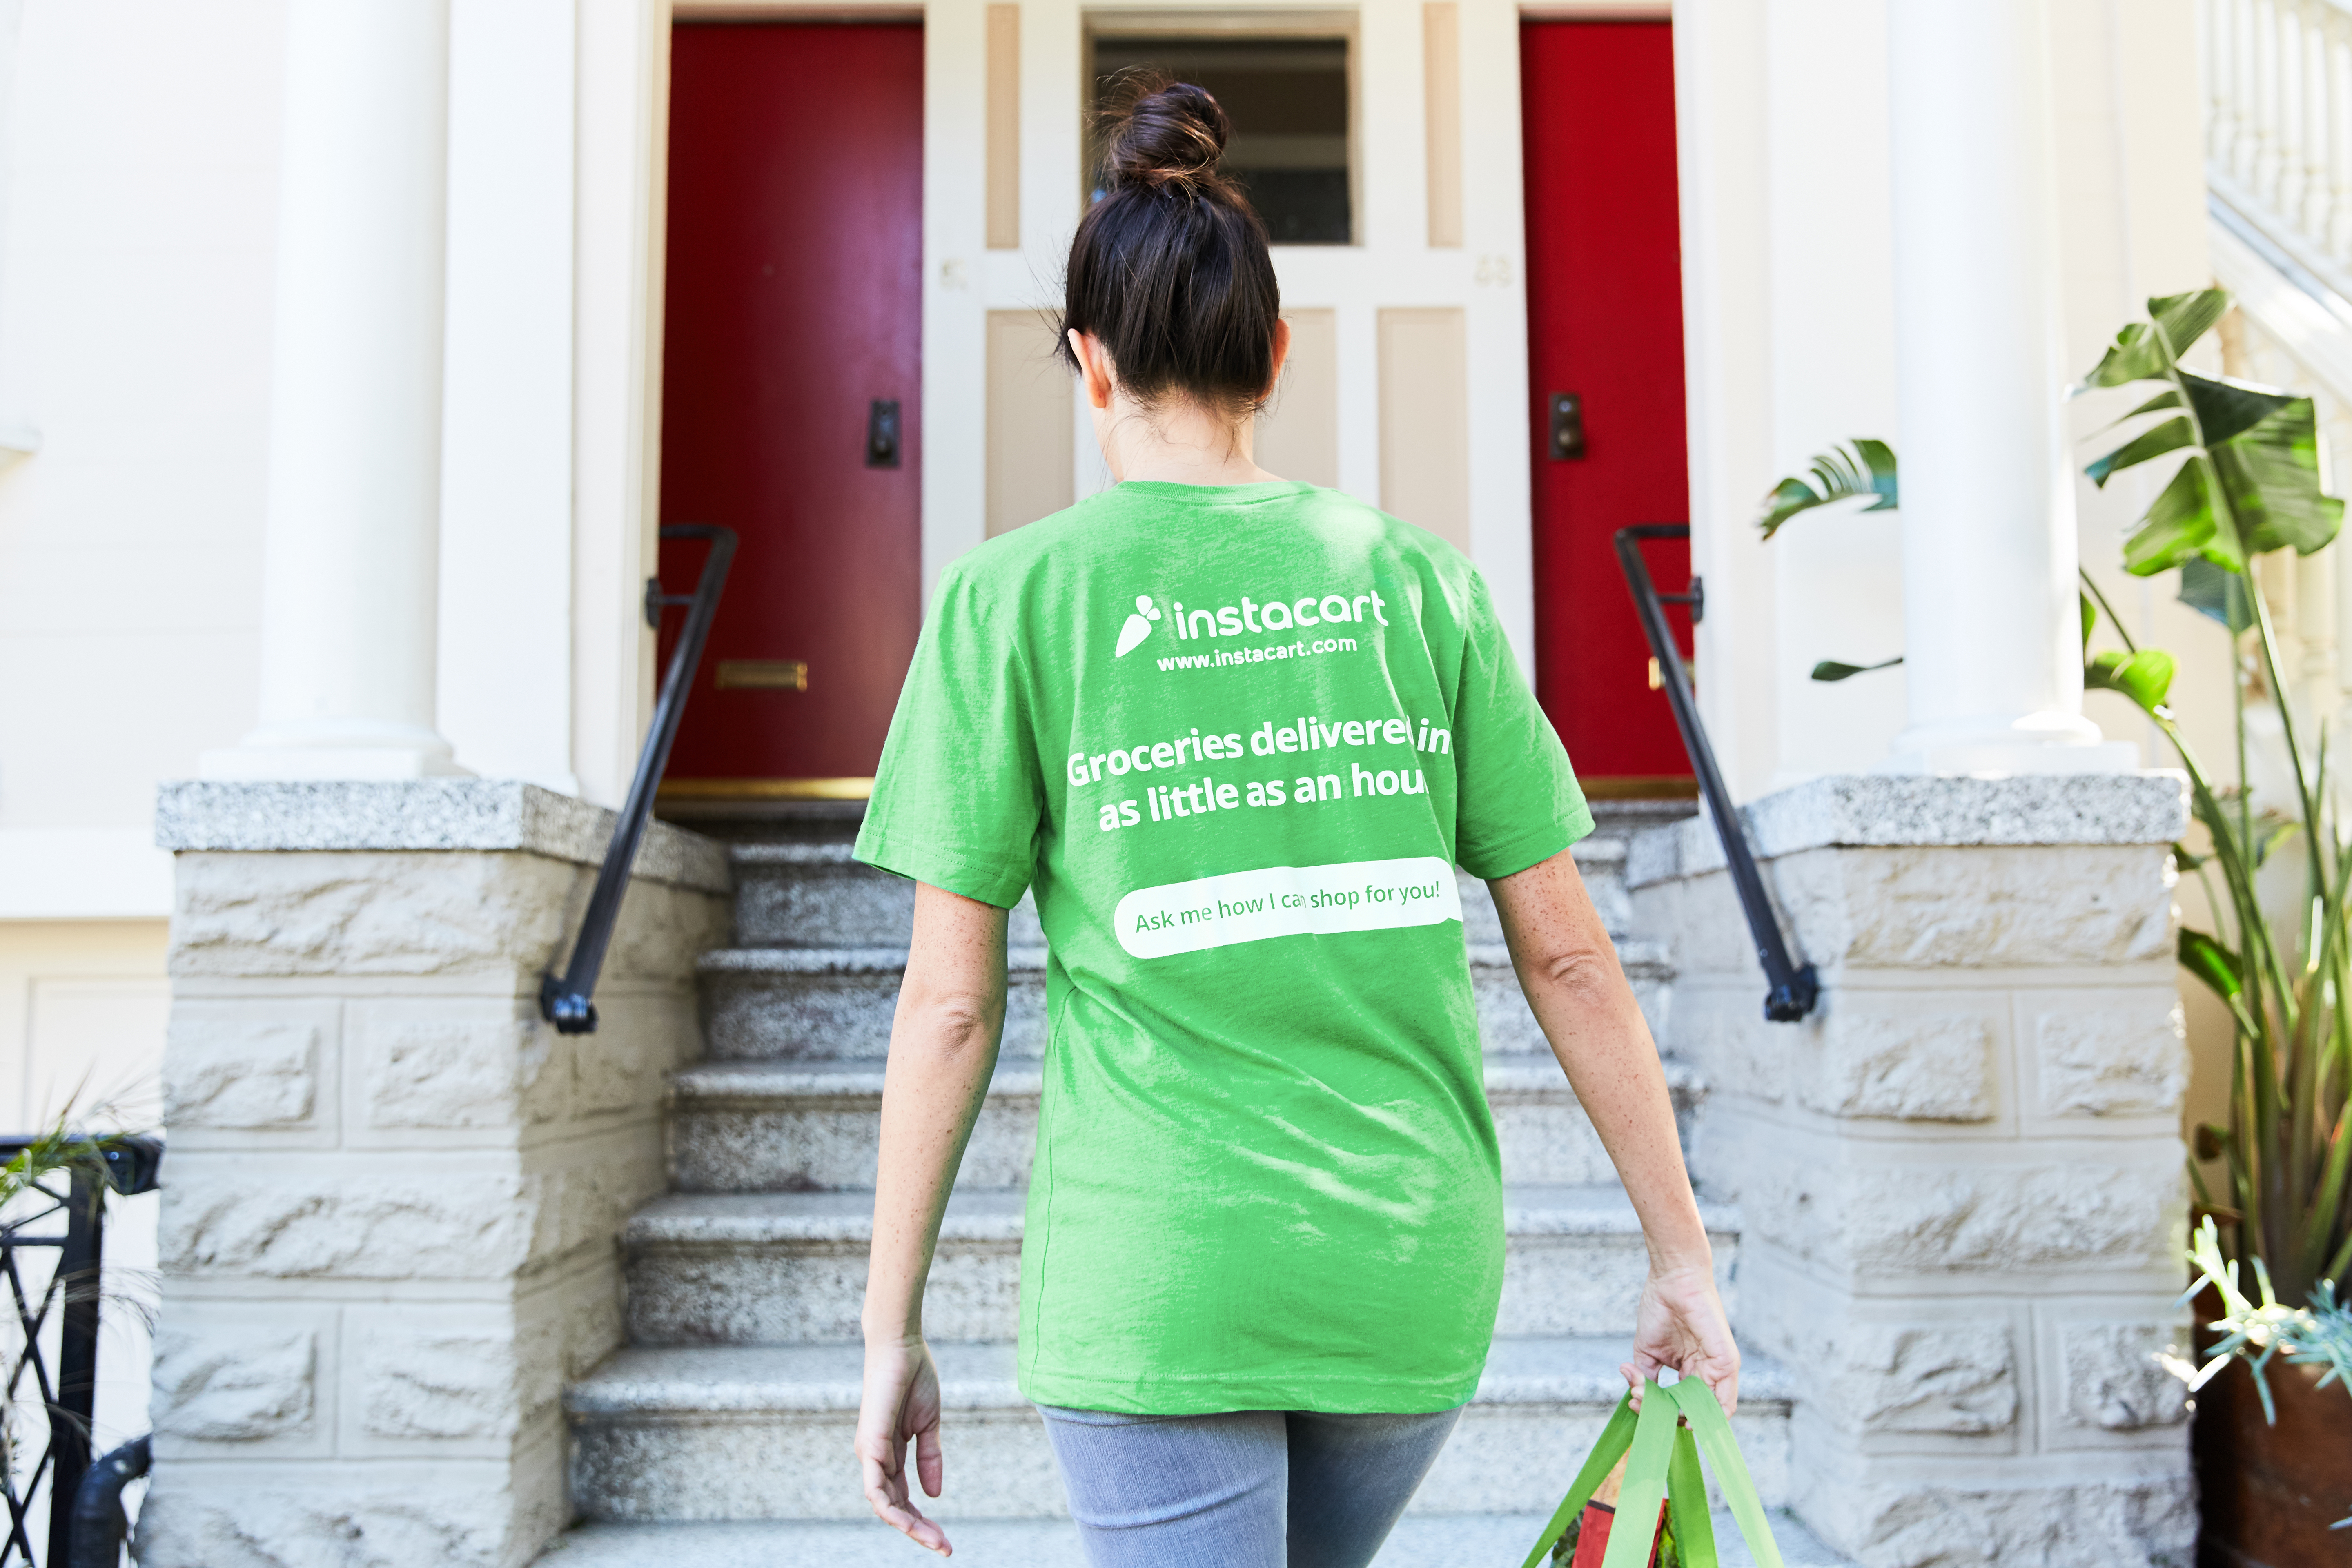 A woman in a green Instacart shirt from behind, climbing steps to a house